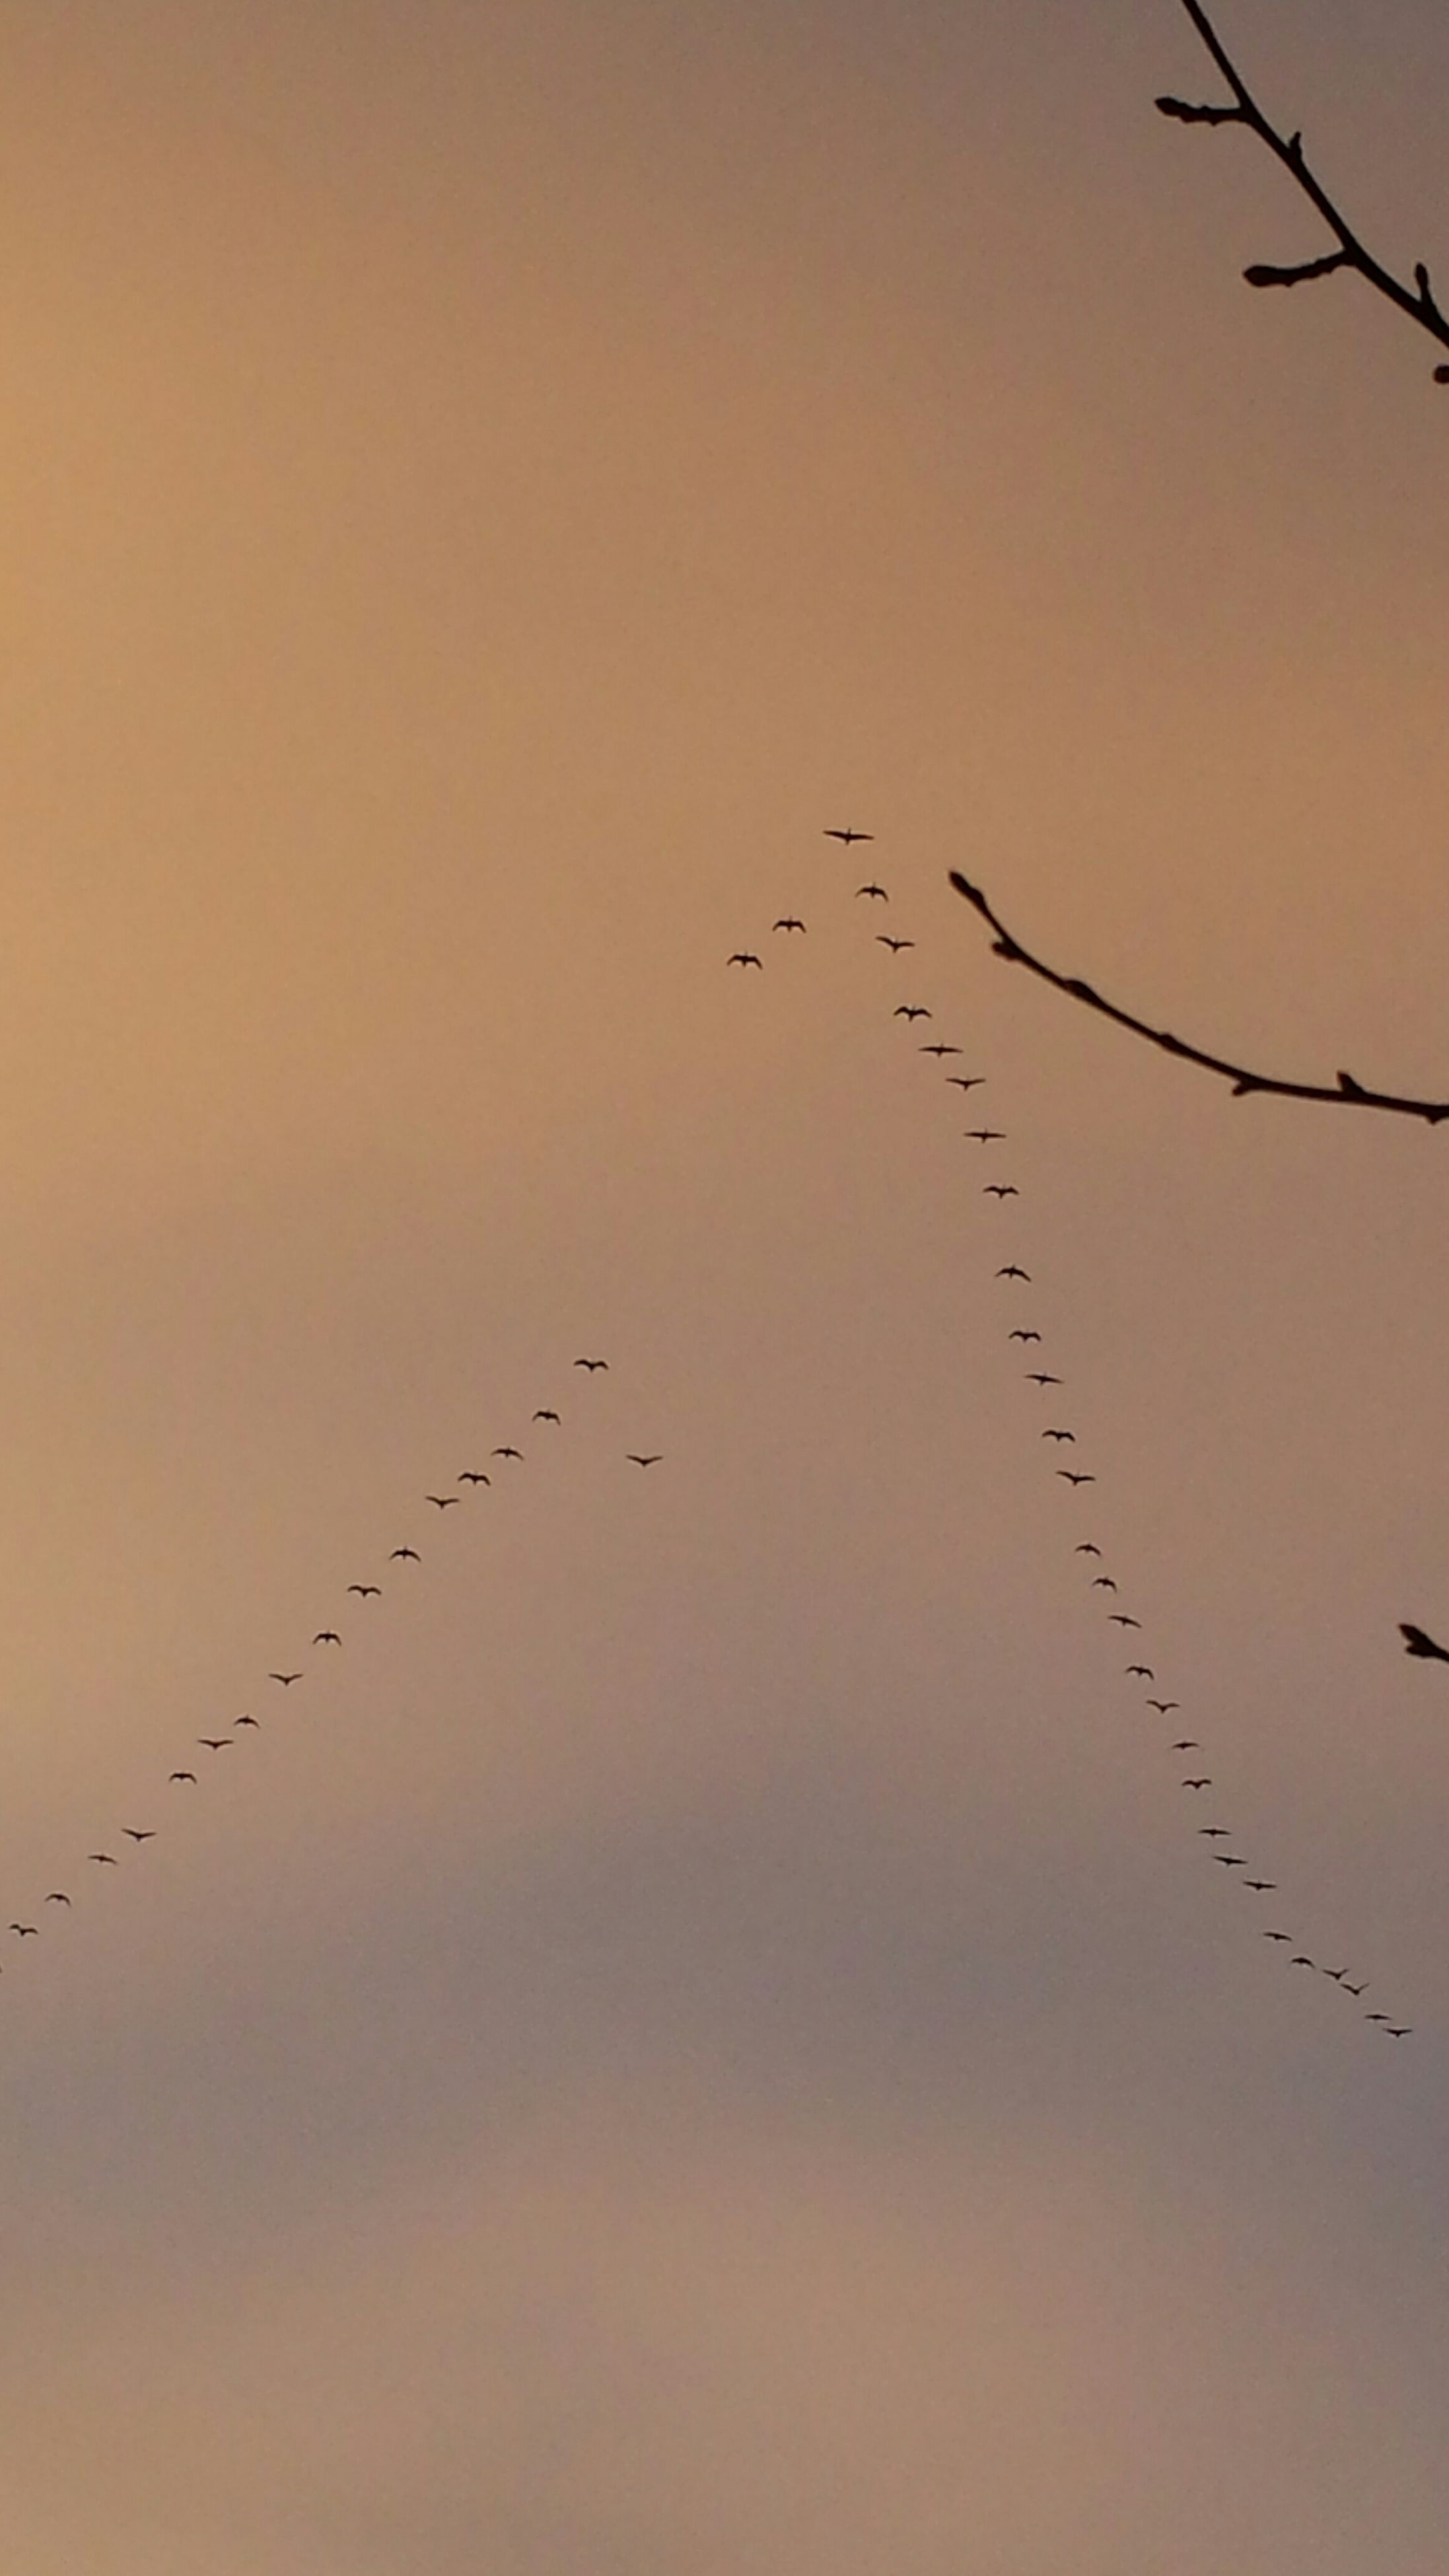 bird, animal themes, animals in the wild, flying, wildlife, flock of birds, silhouette, low angle view, sunset, sky, nature, clear sky, beauty in nature, outdoors, spread wings, medium group of animals, no people, mid-air, perching